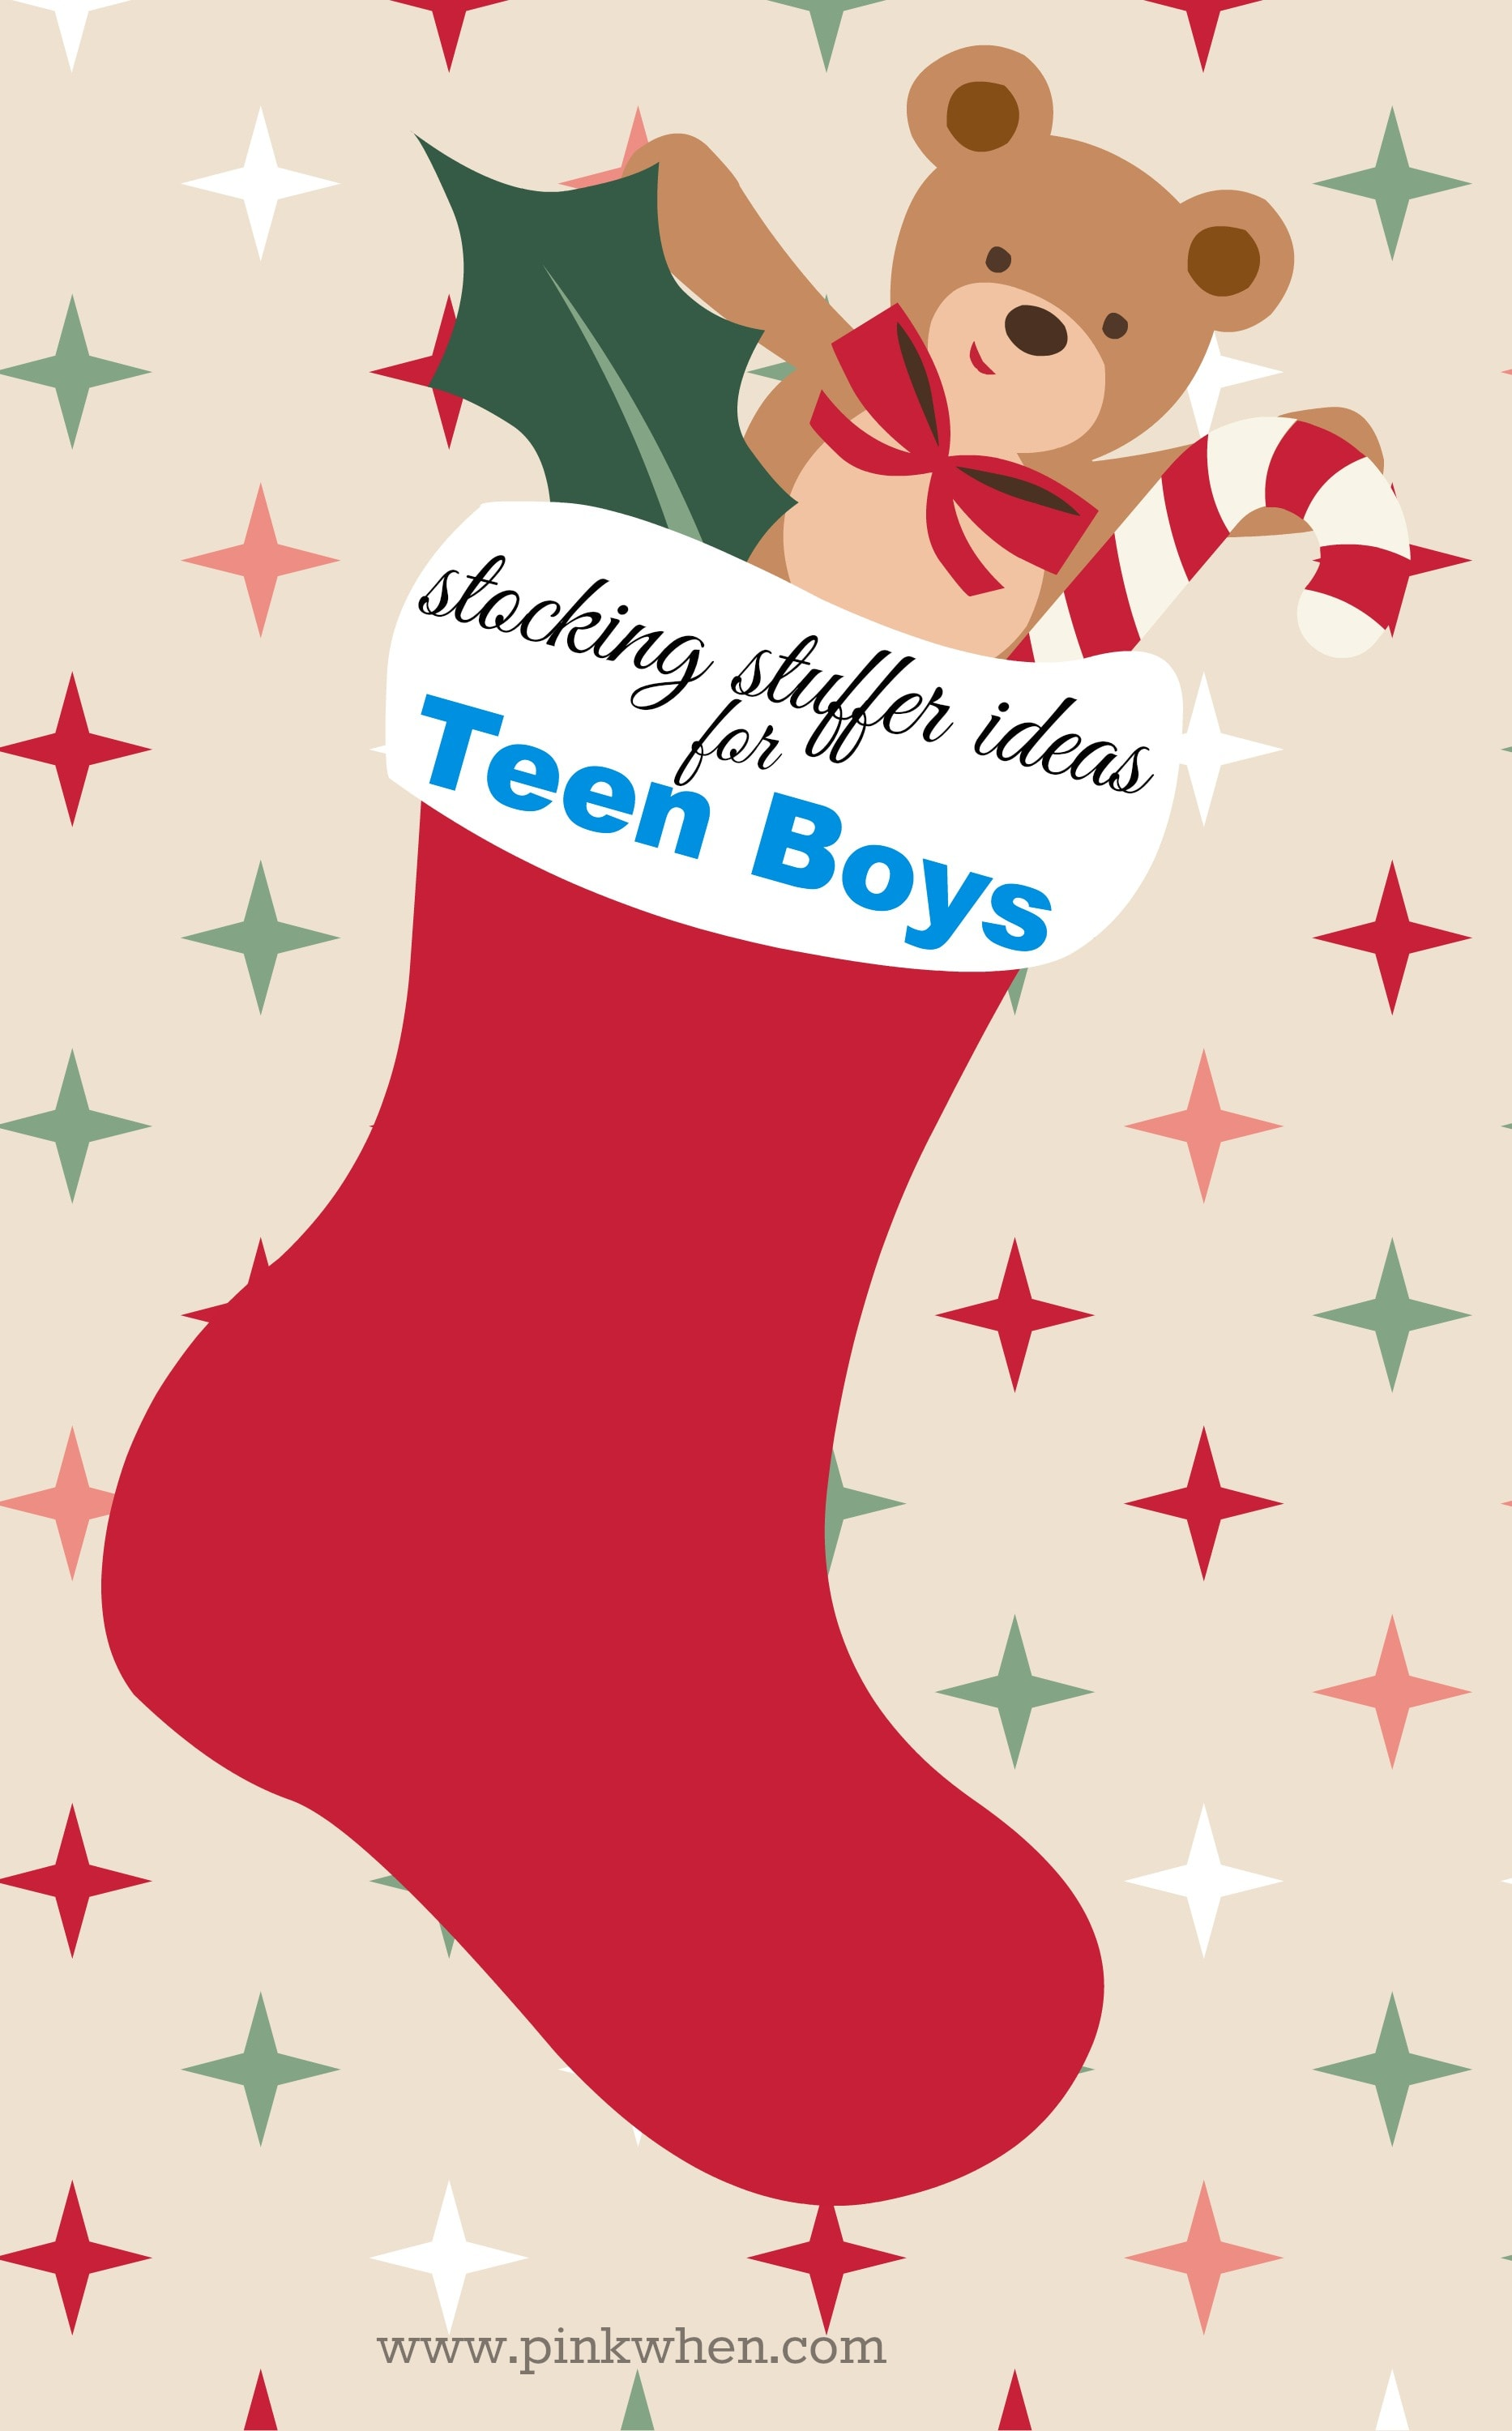 Stocking Stuffer Ideas for Teens - Teen Boys